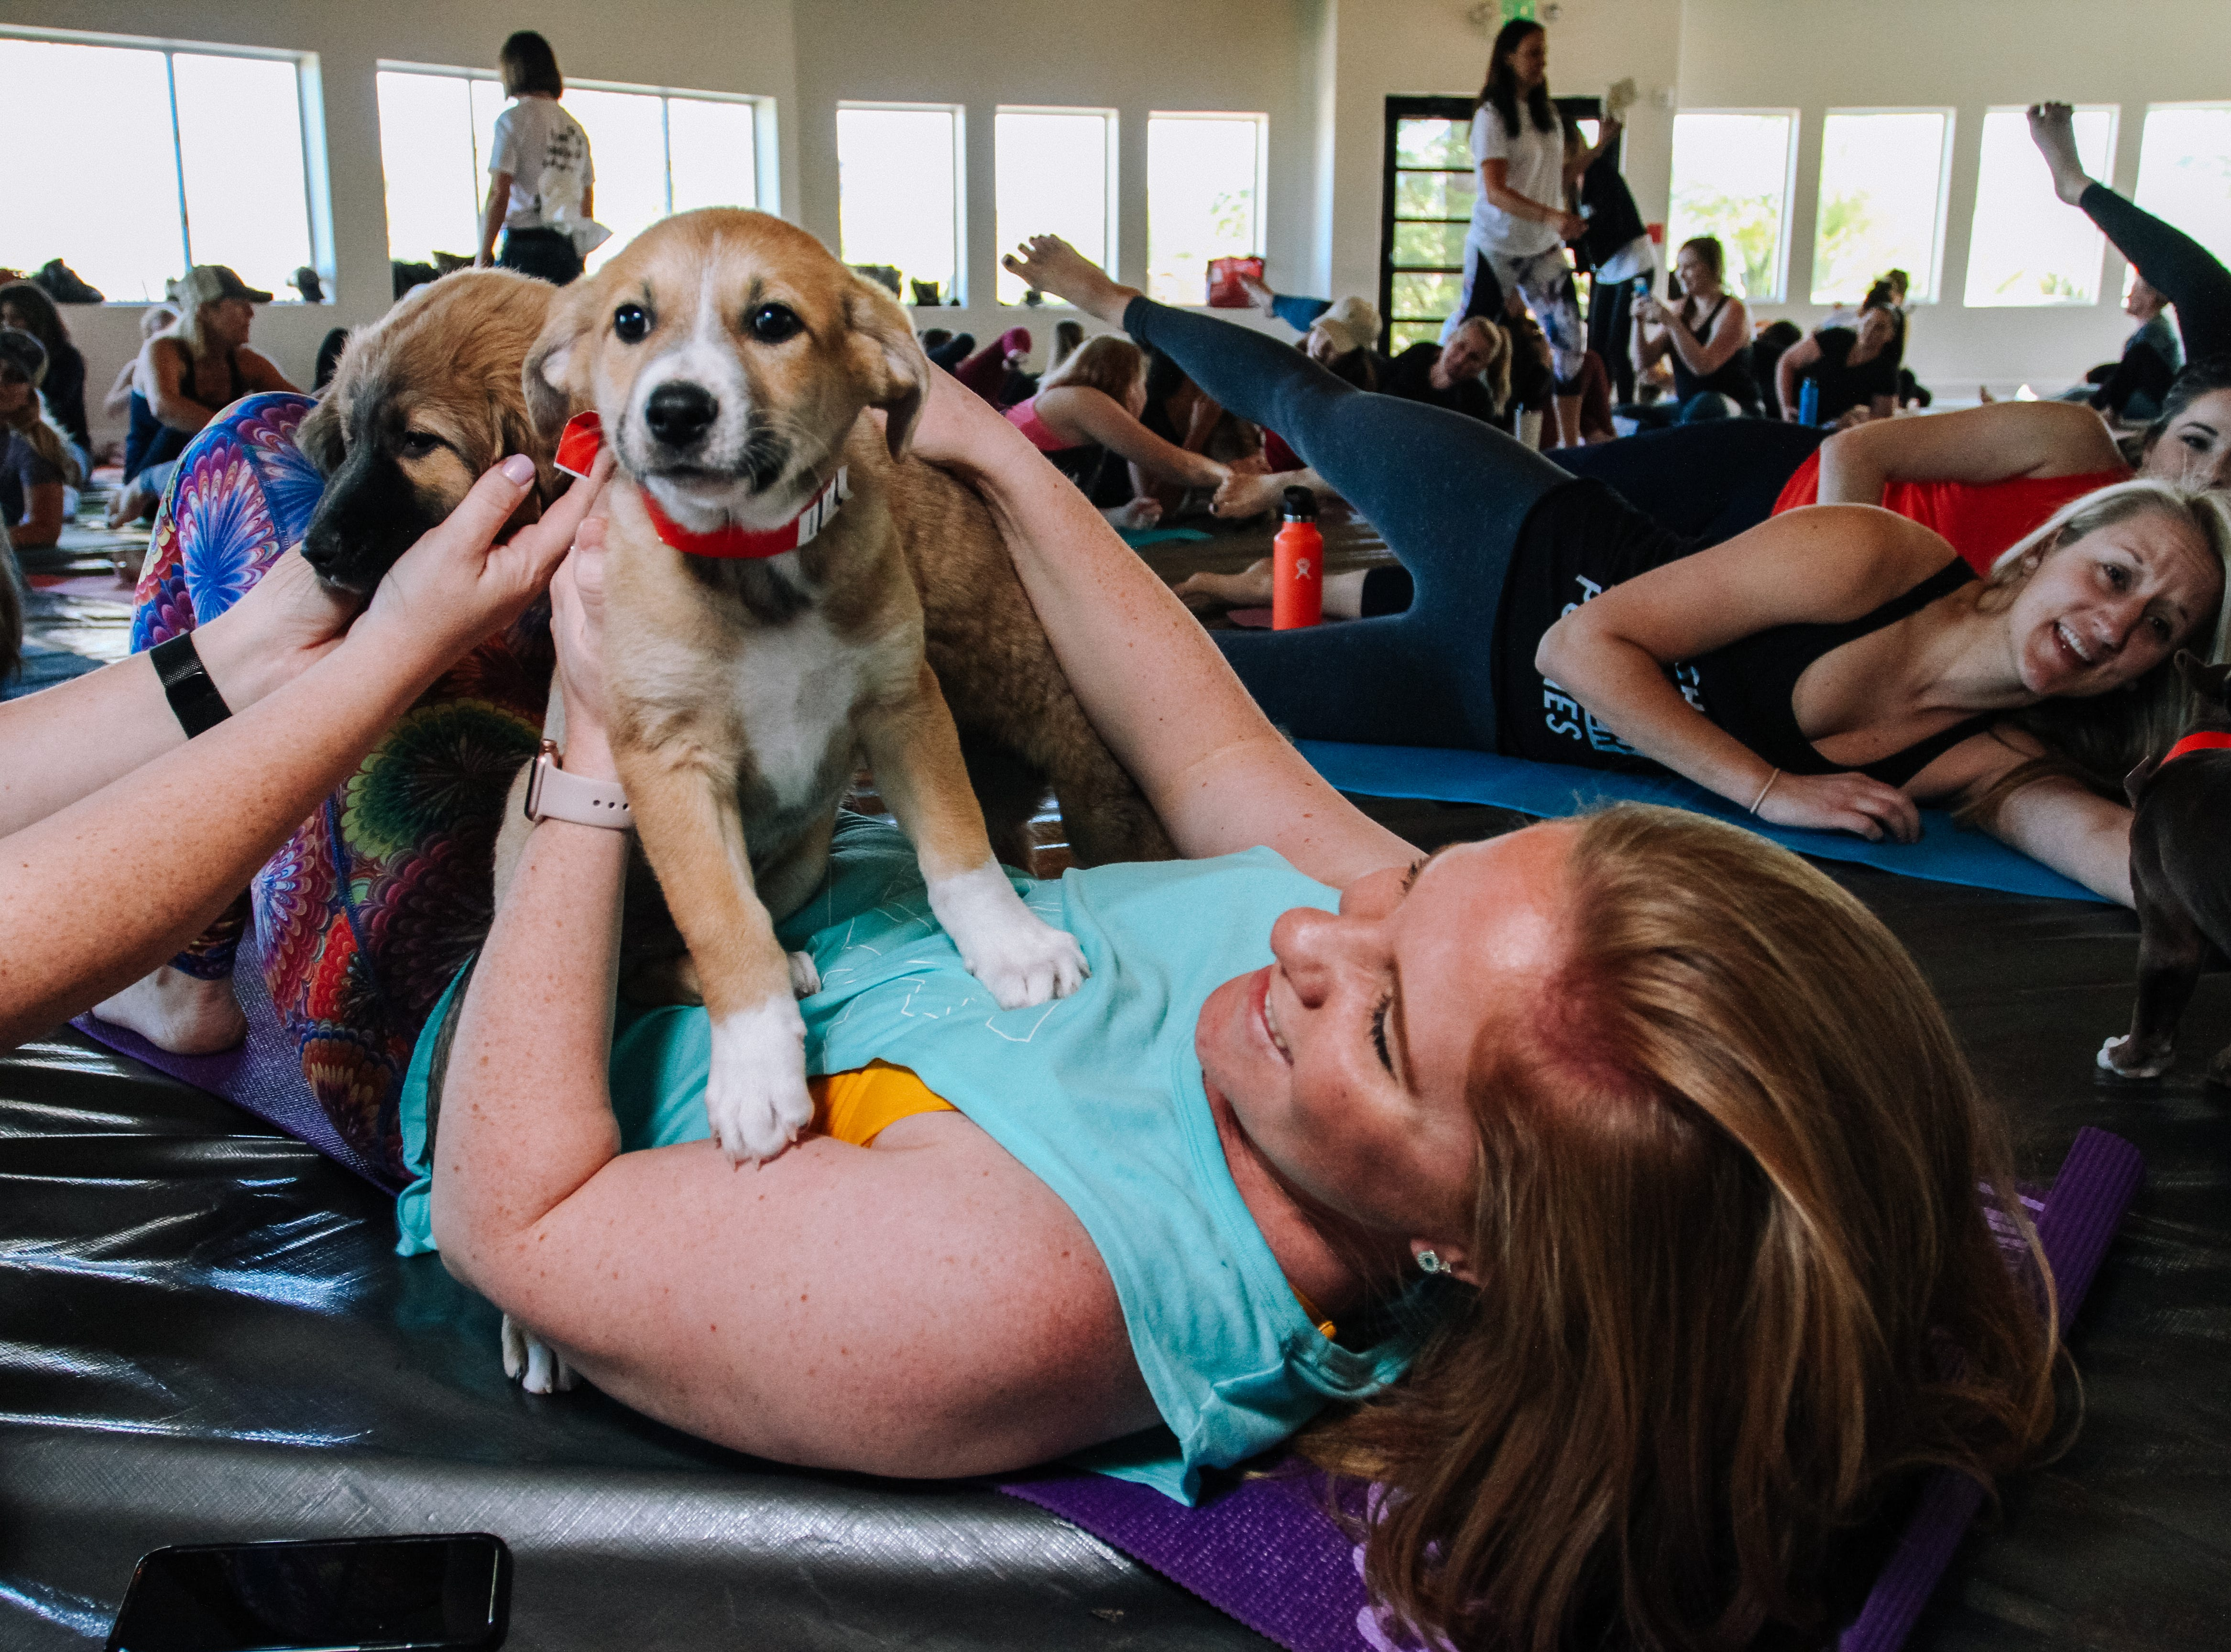 Alex Langley plays with a puppie at Puppies, Pilates and Prosecco, an event hosted by Almost There Foster Care at the Wrigley Mansion in Phoenix on April 13, 2019.